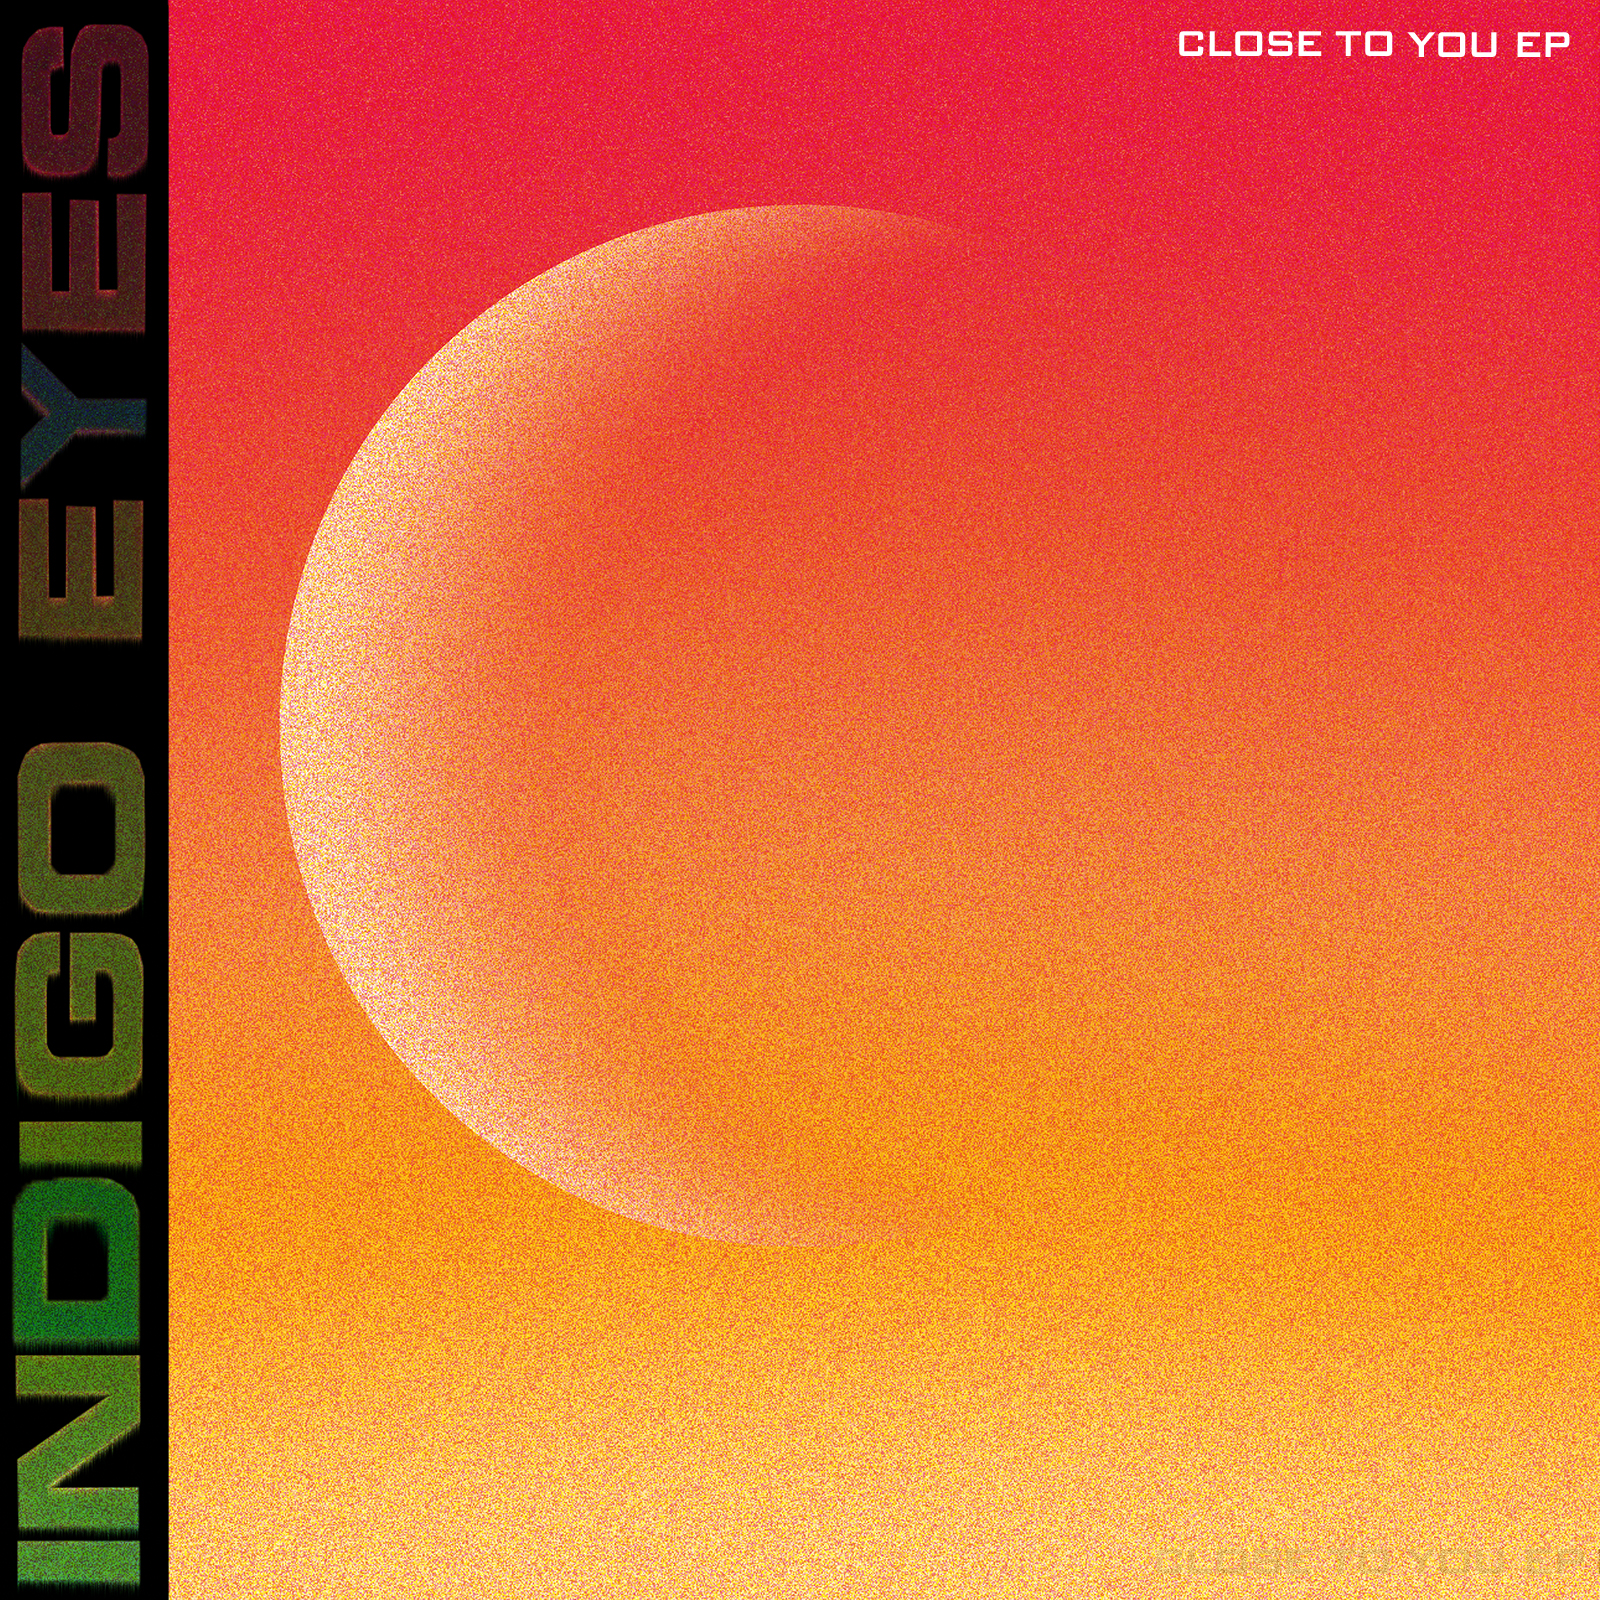 Close to You EP Image